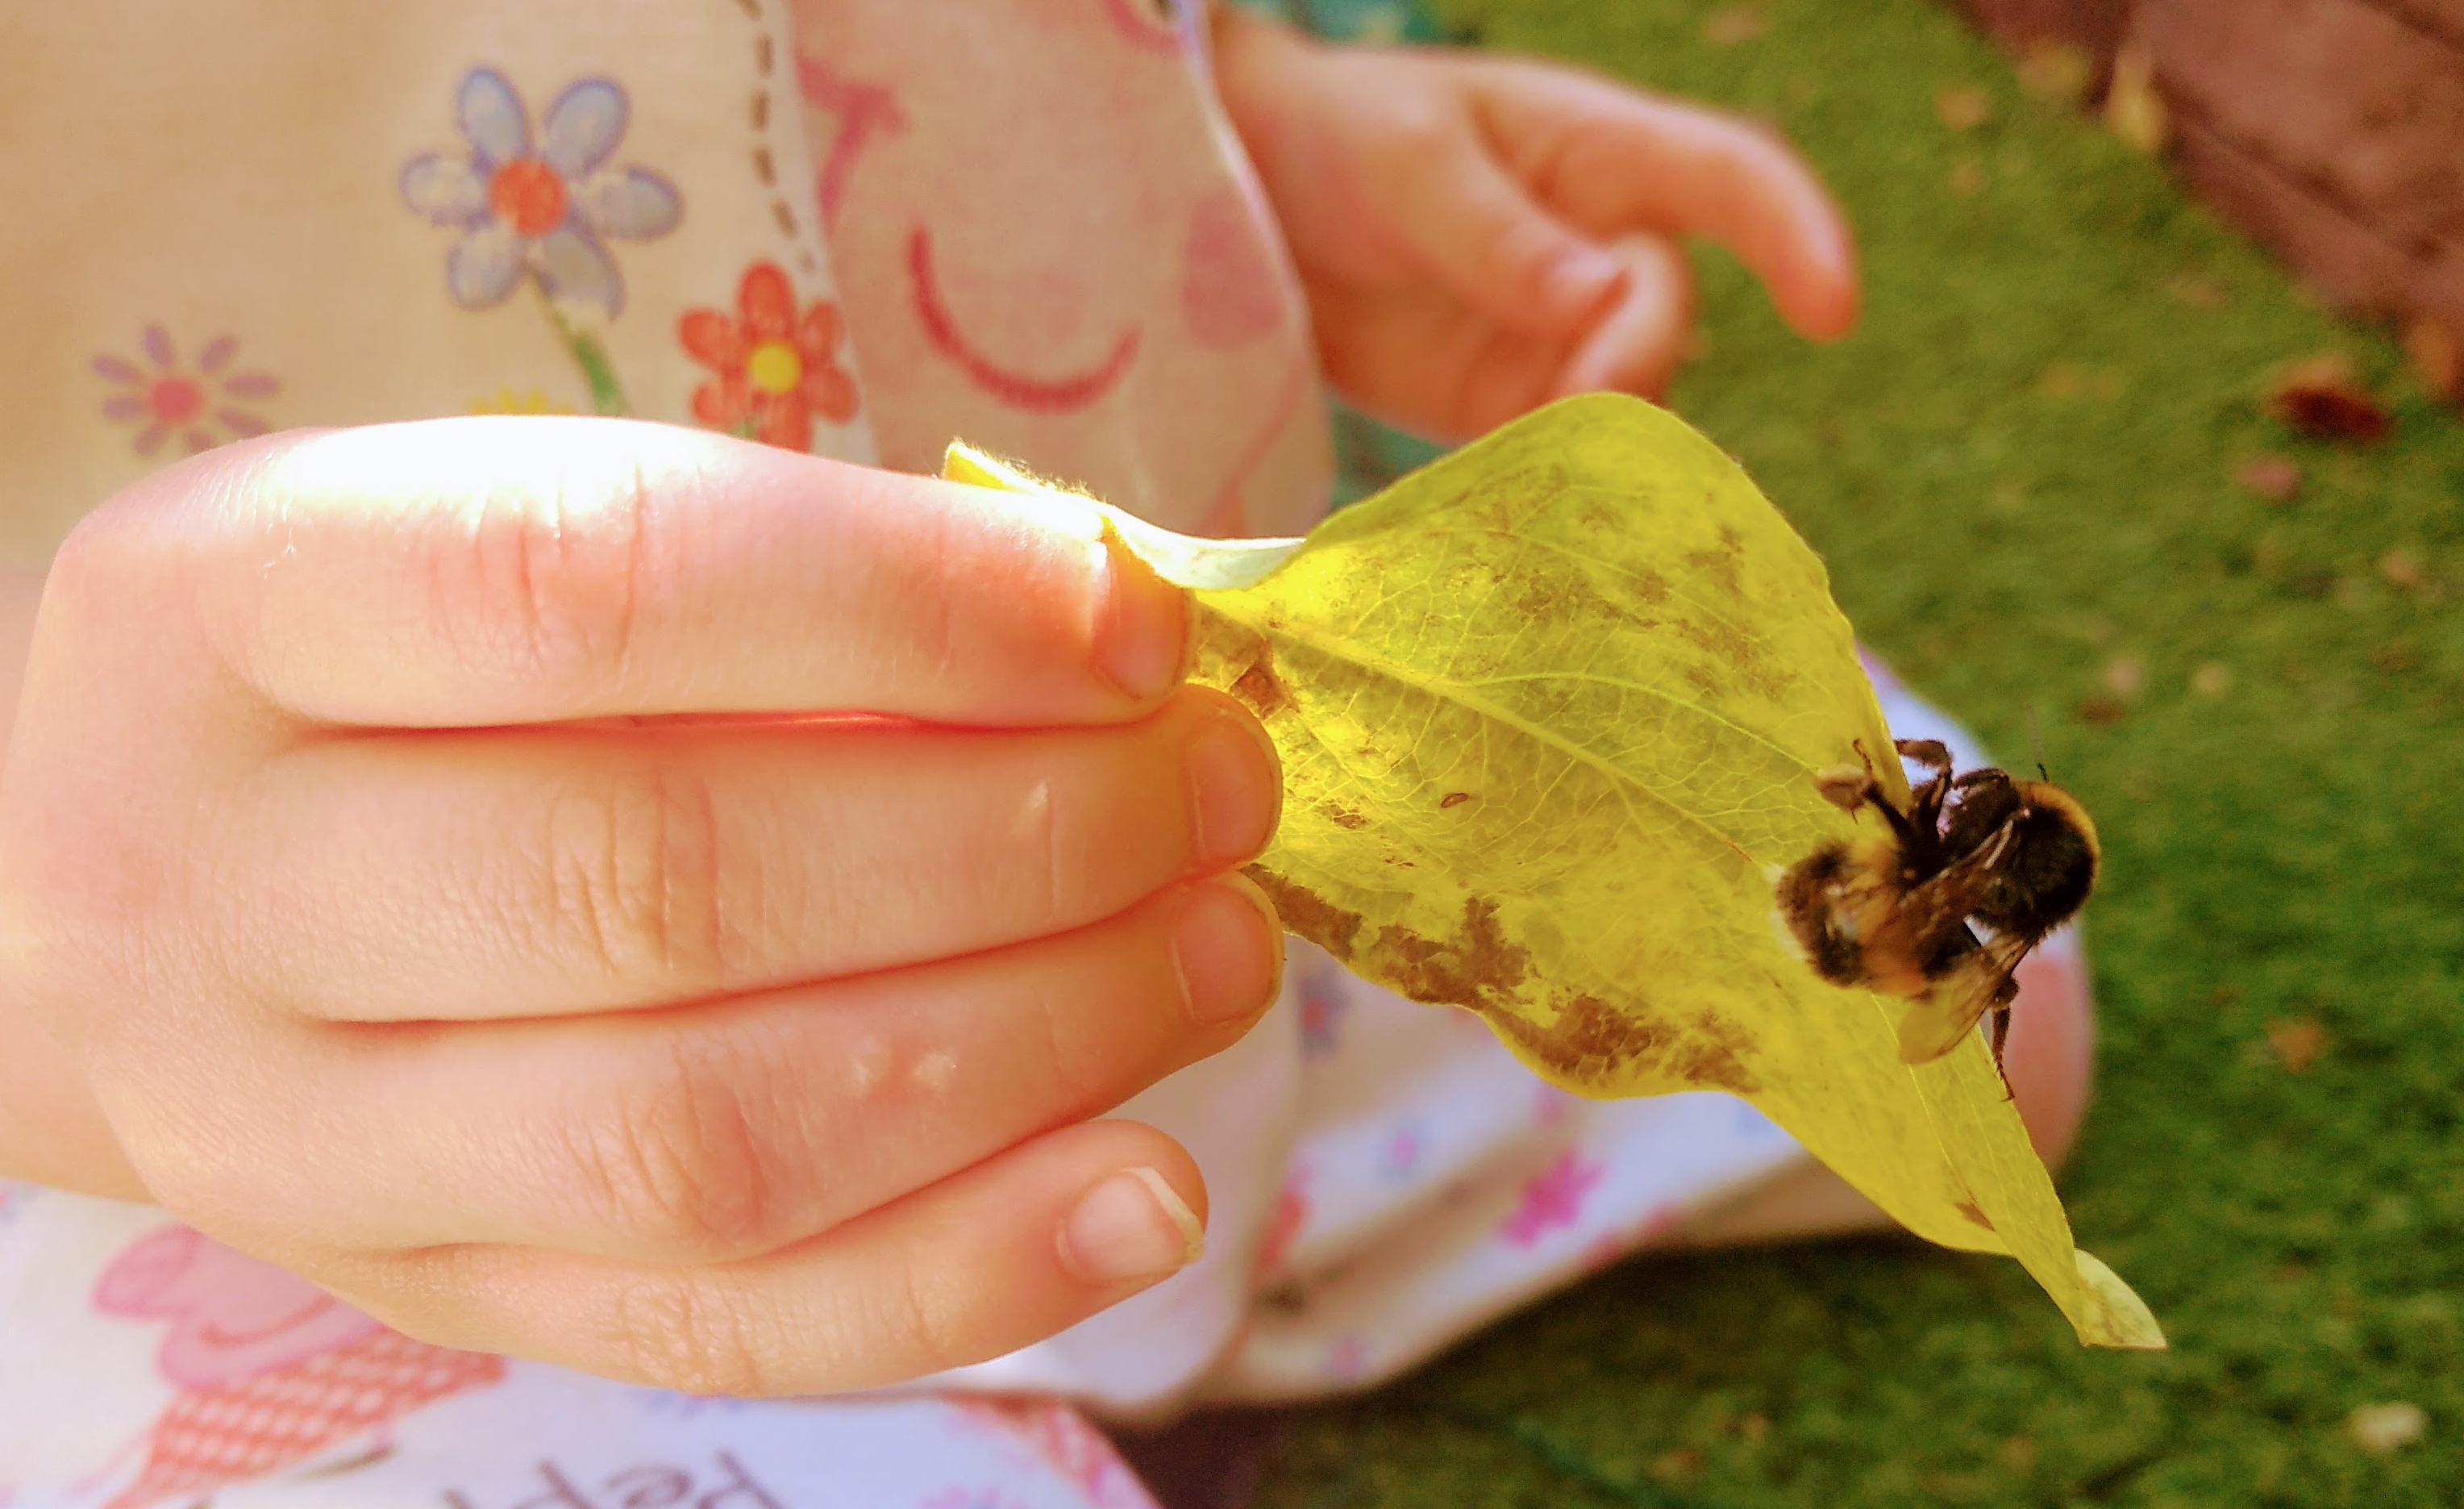 child's hand holding leaf with bee on it